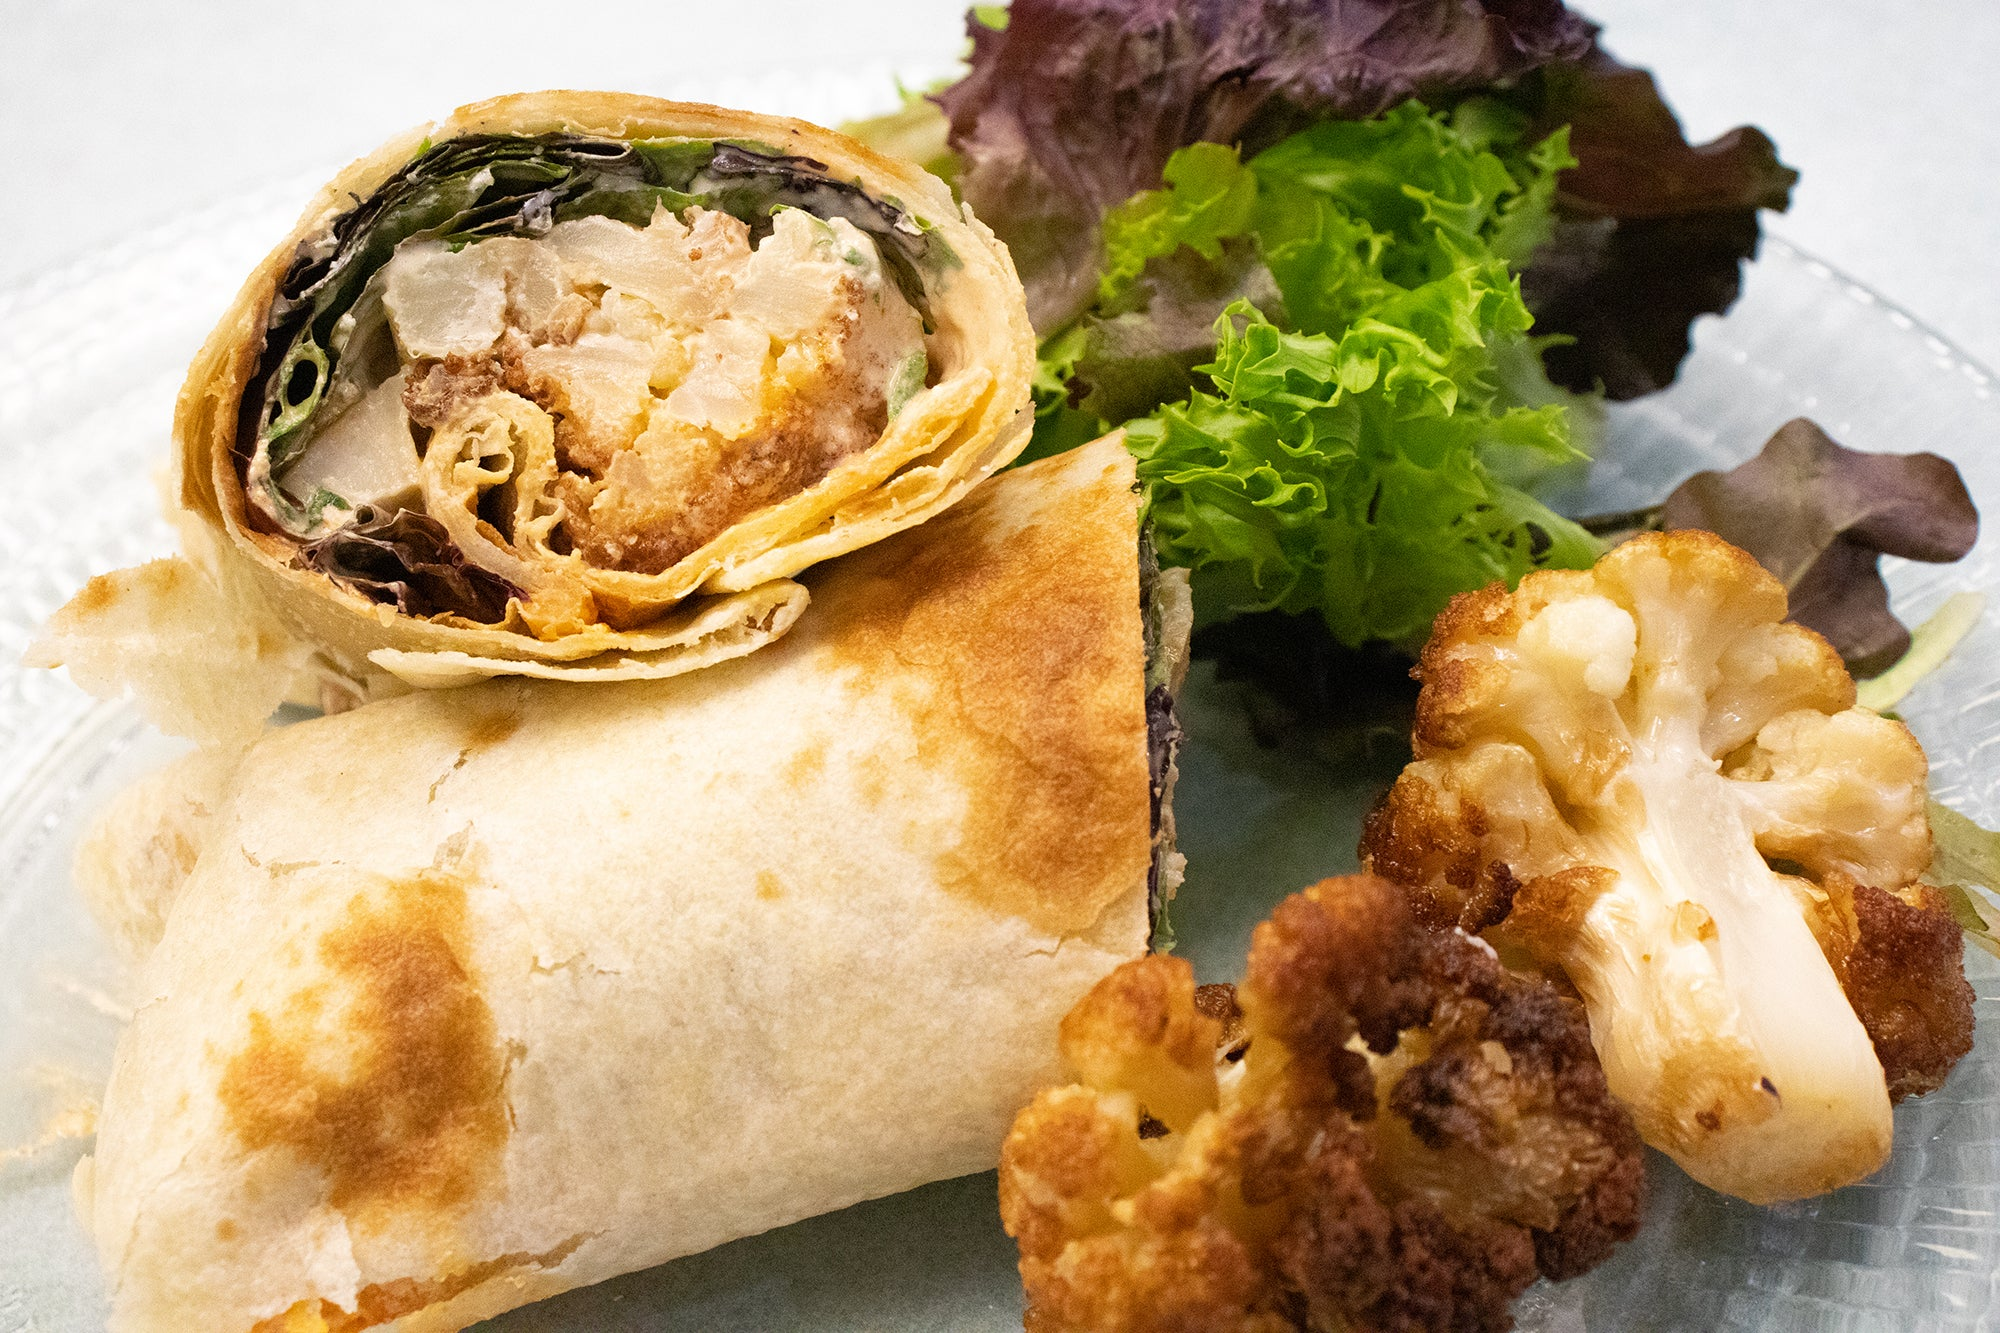 (Vegan/Veg.) Fried Cauliflower and Tahini Wrap